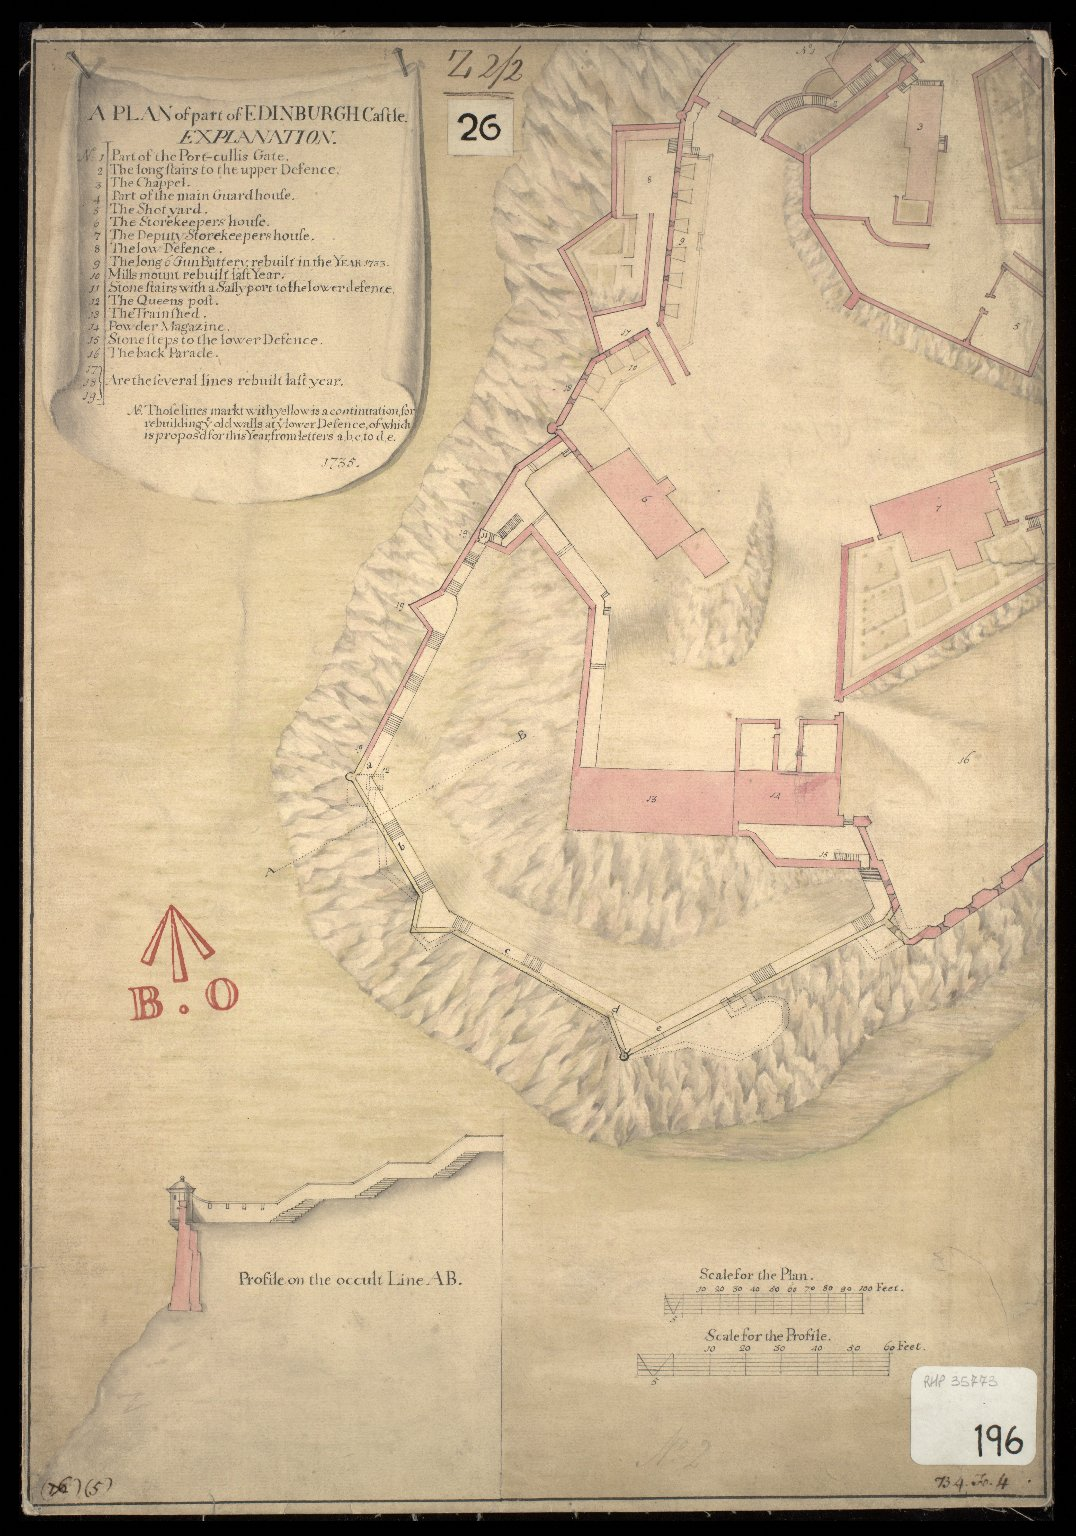 A Plan of part of the Edinburgh Castle [1 of 1]